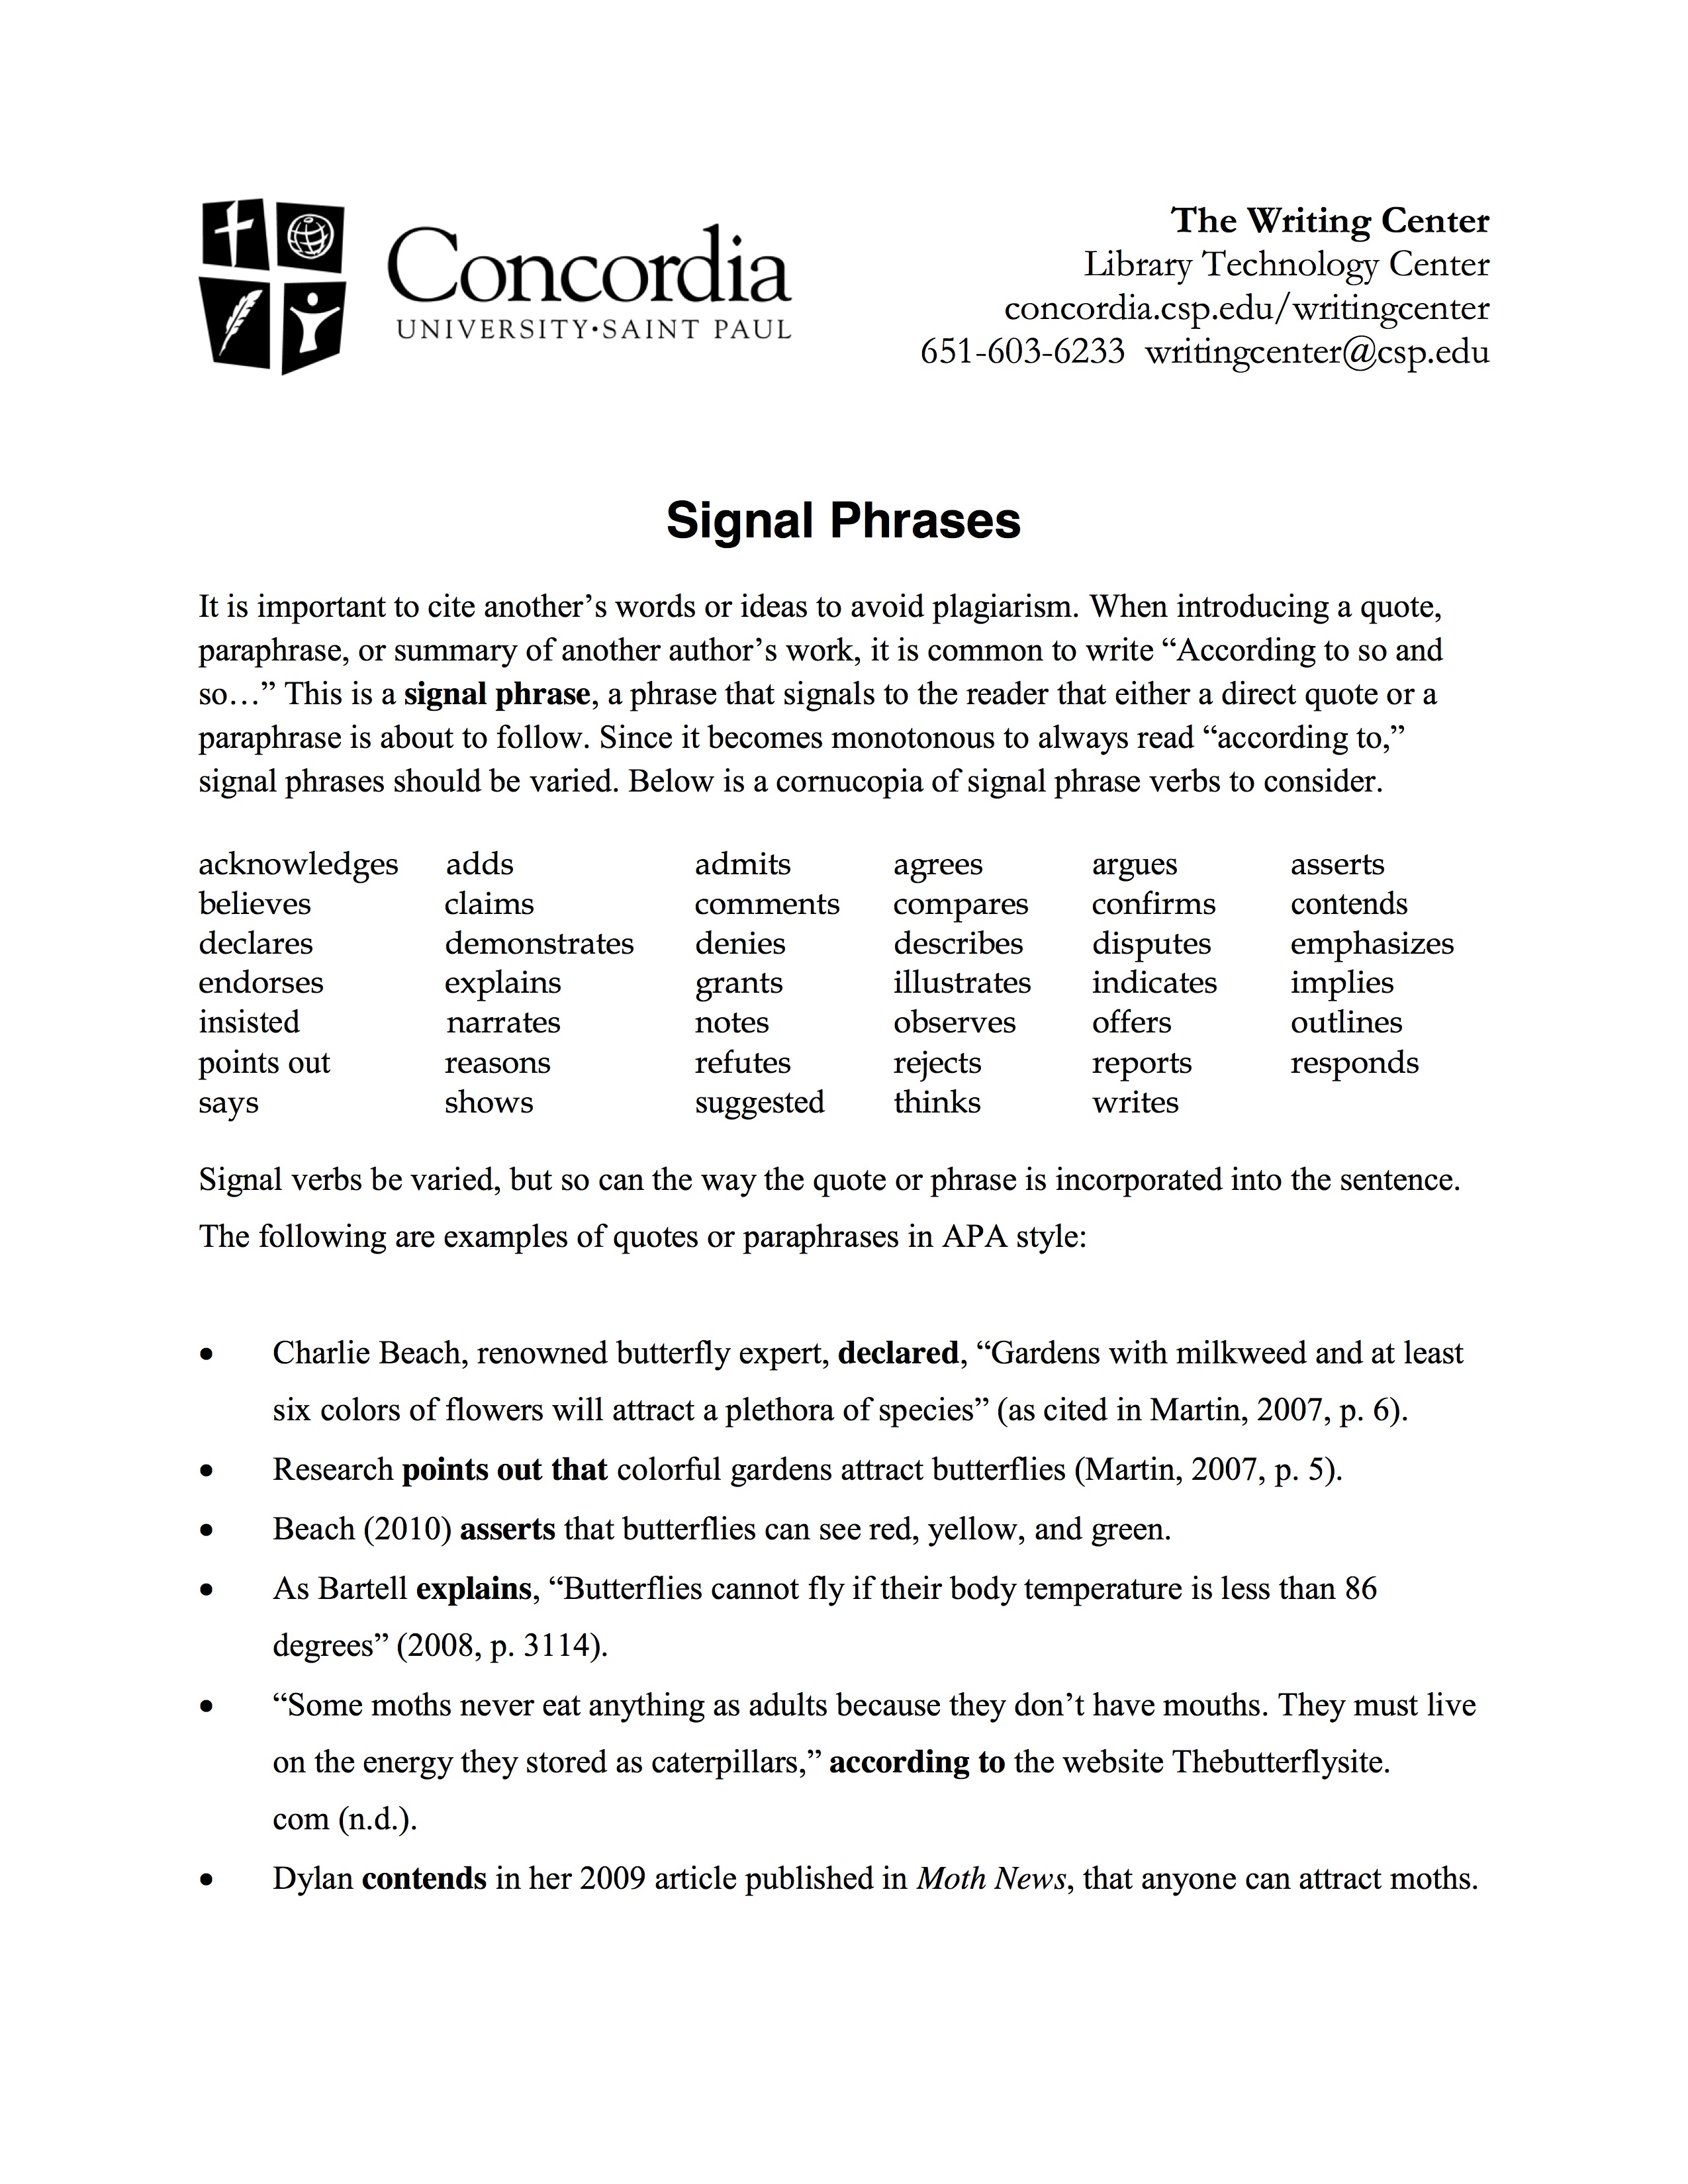 INTEGRATING SOURCES USING SIGNAL PHRASES - CITATIONS